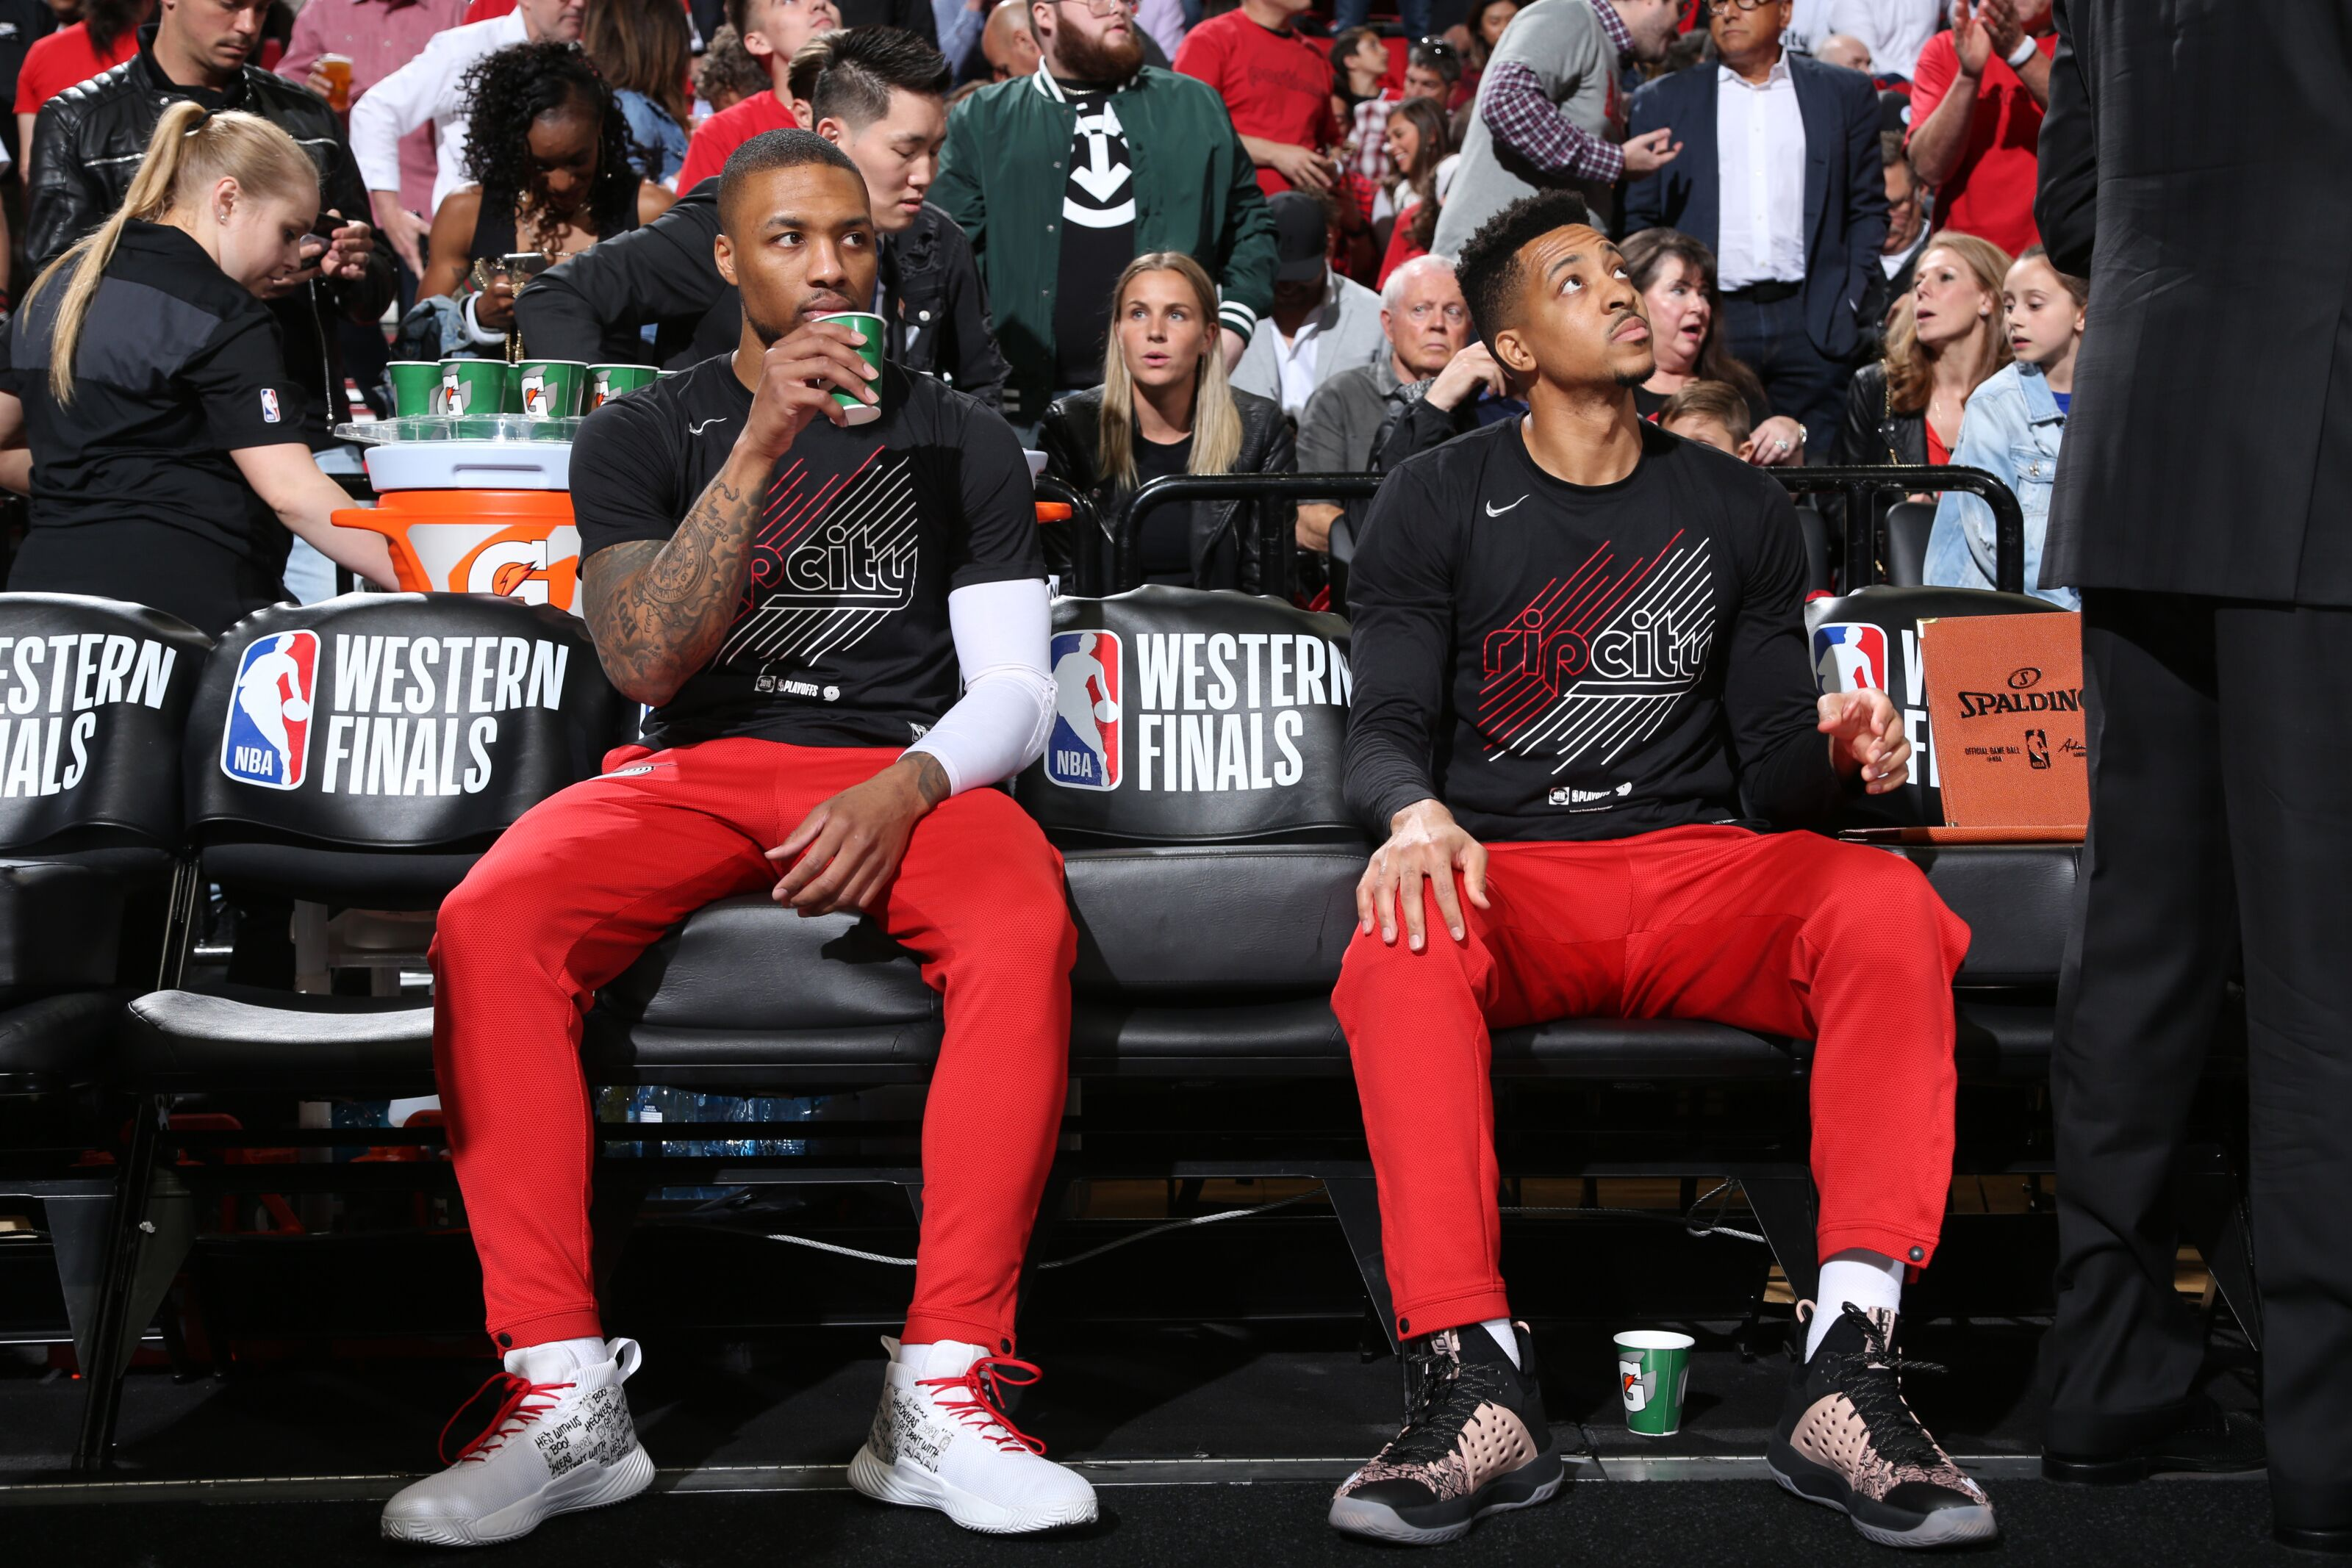 Where does the Portland Trail Blazers' backcourt rank in the NBA's duos?